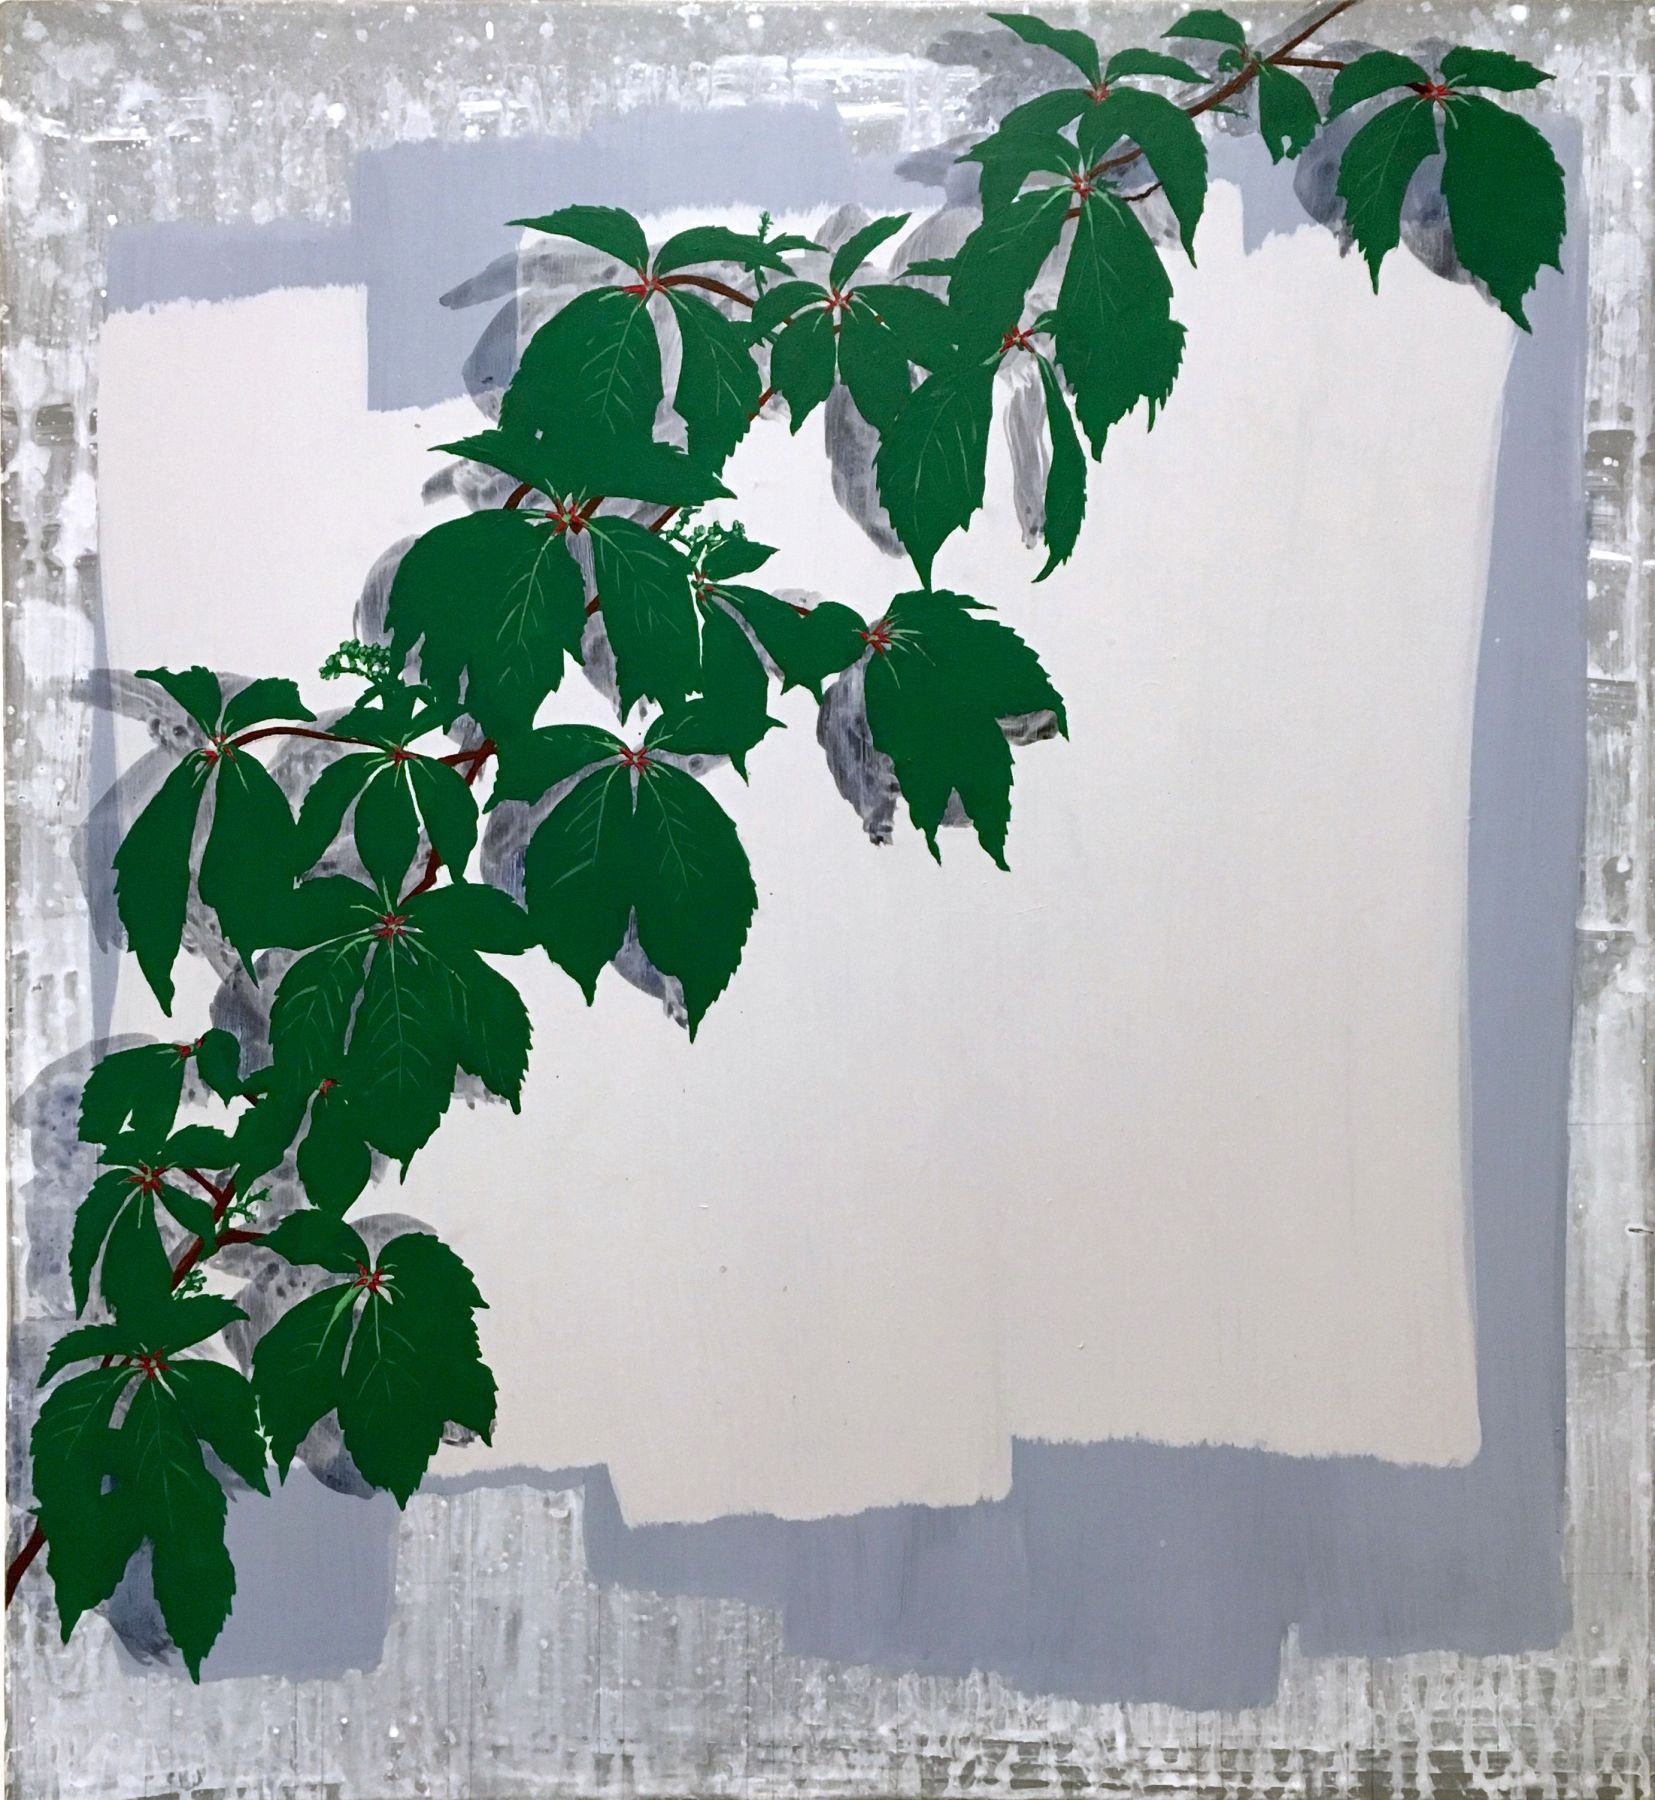 Hannah Cole  Virginia Creeper, 2016  Acrylic on canvas  24h x 22w in 60.96h x 55.88w cm  HC_032 Photorealistic painting